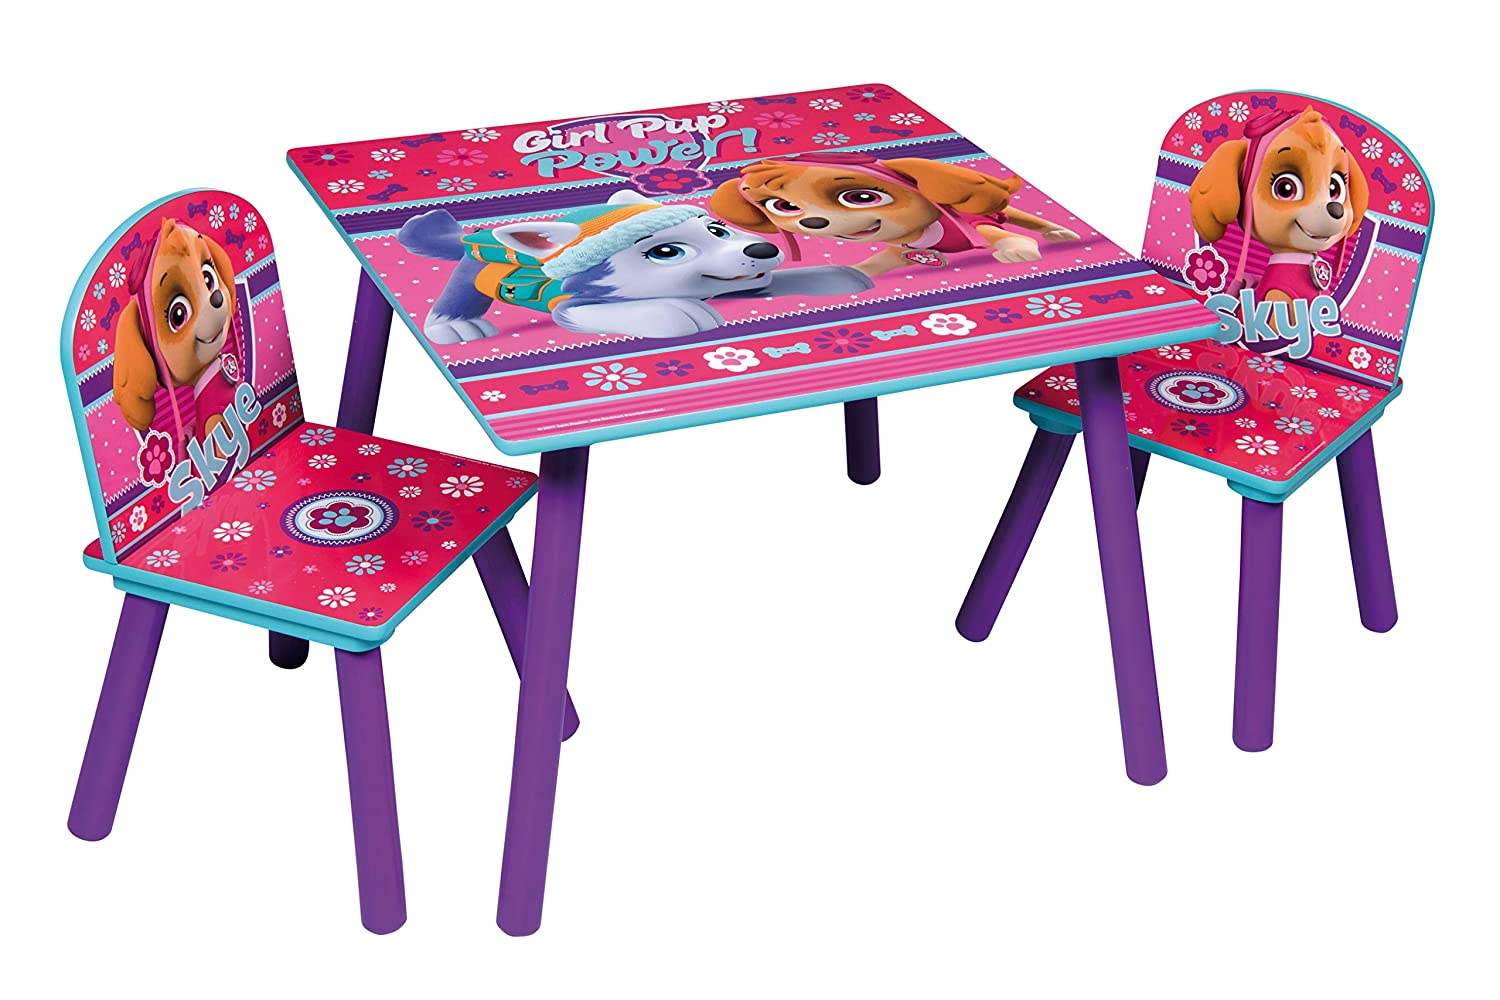 Pat Patrouille fille 80434-S Lot de Table + 2 Chaises, MDF, Rose/Violet, Taille Unique Global Industry